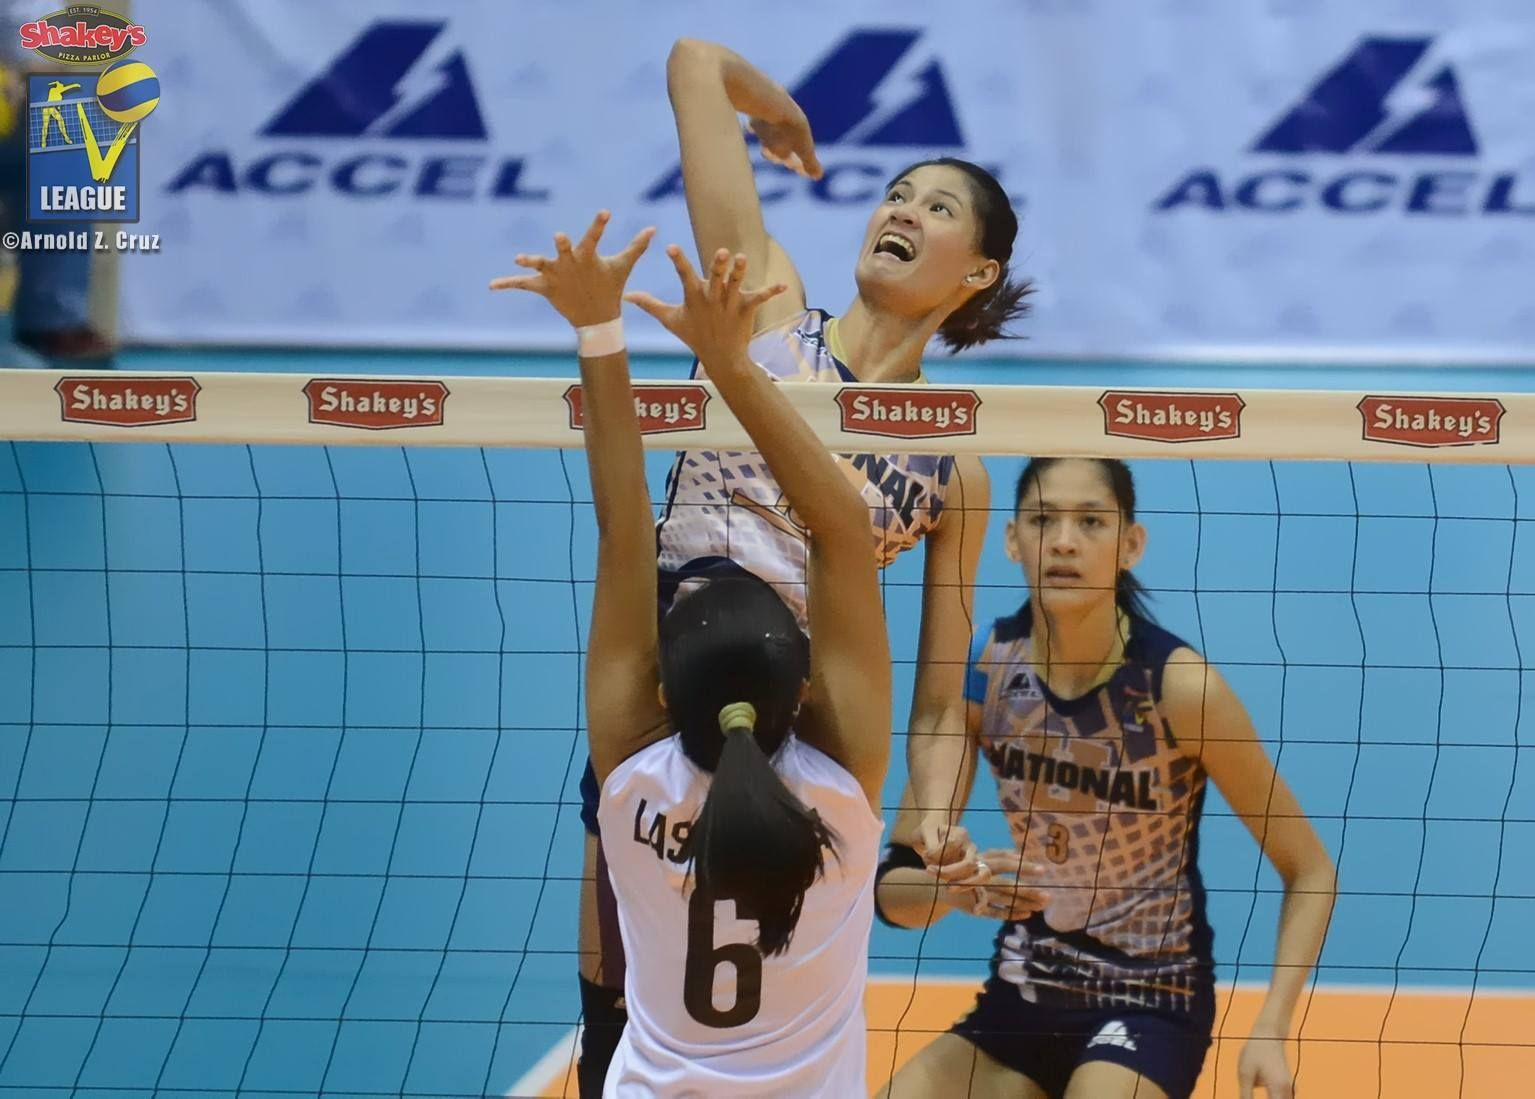 Shakey S V League S Summer Sizzler League Sports Women Volleyball